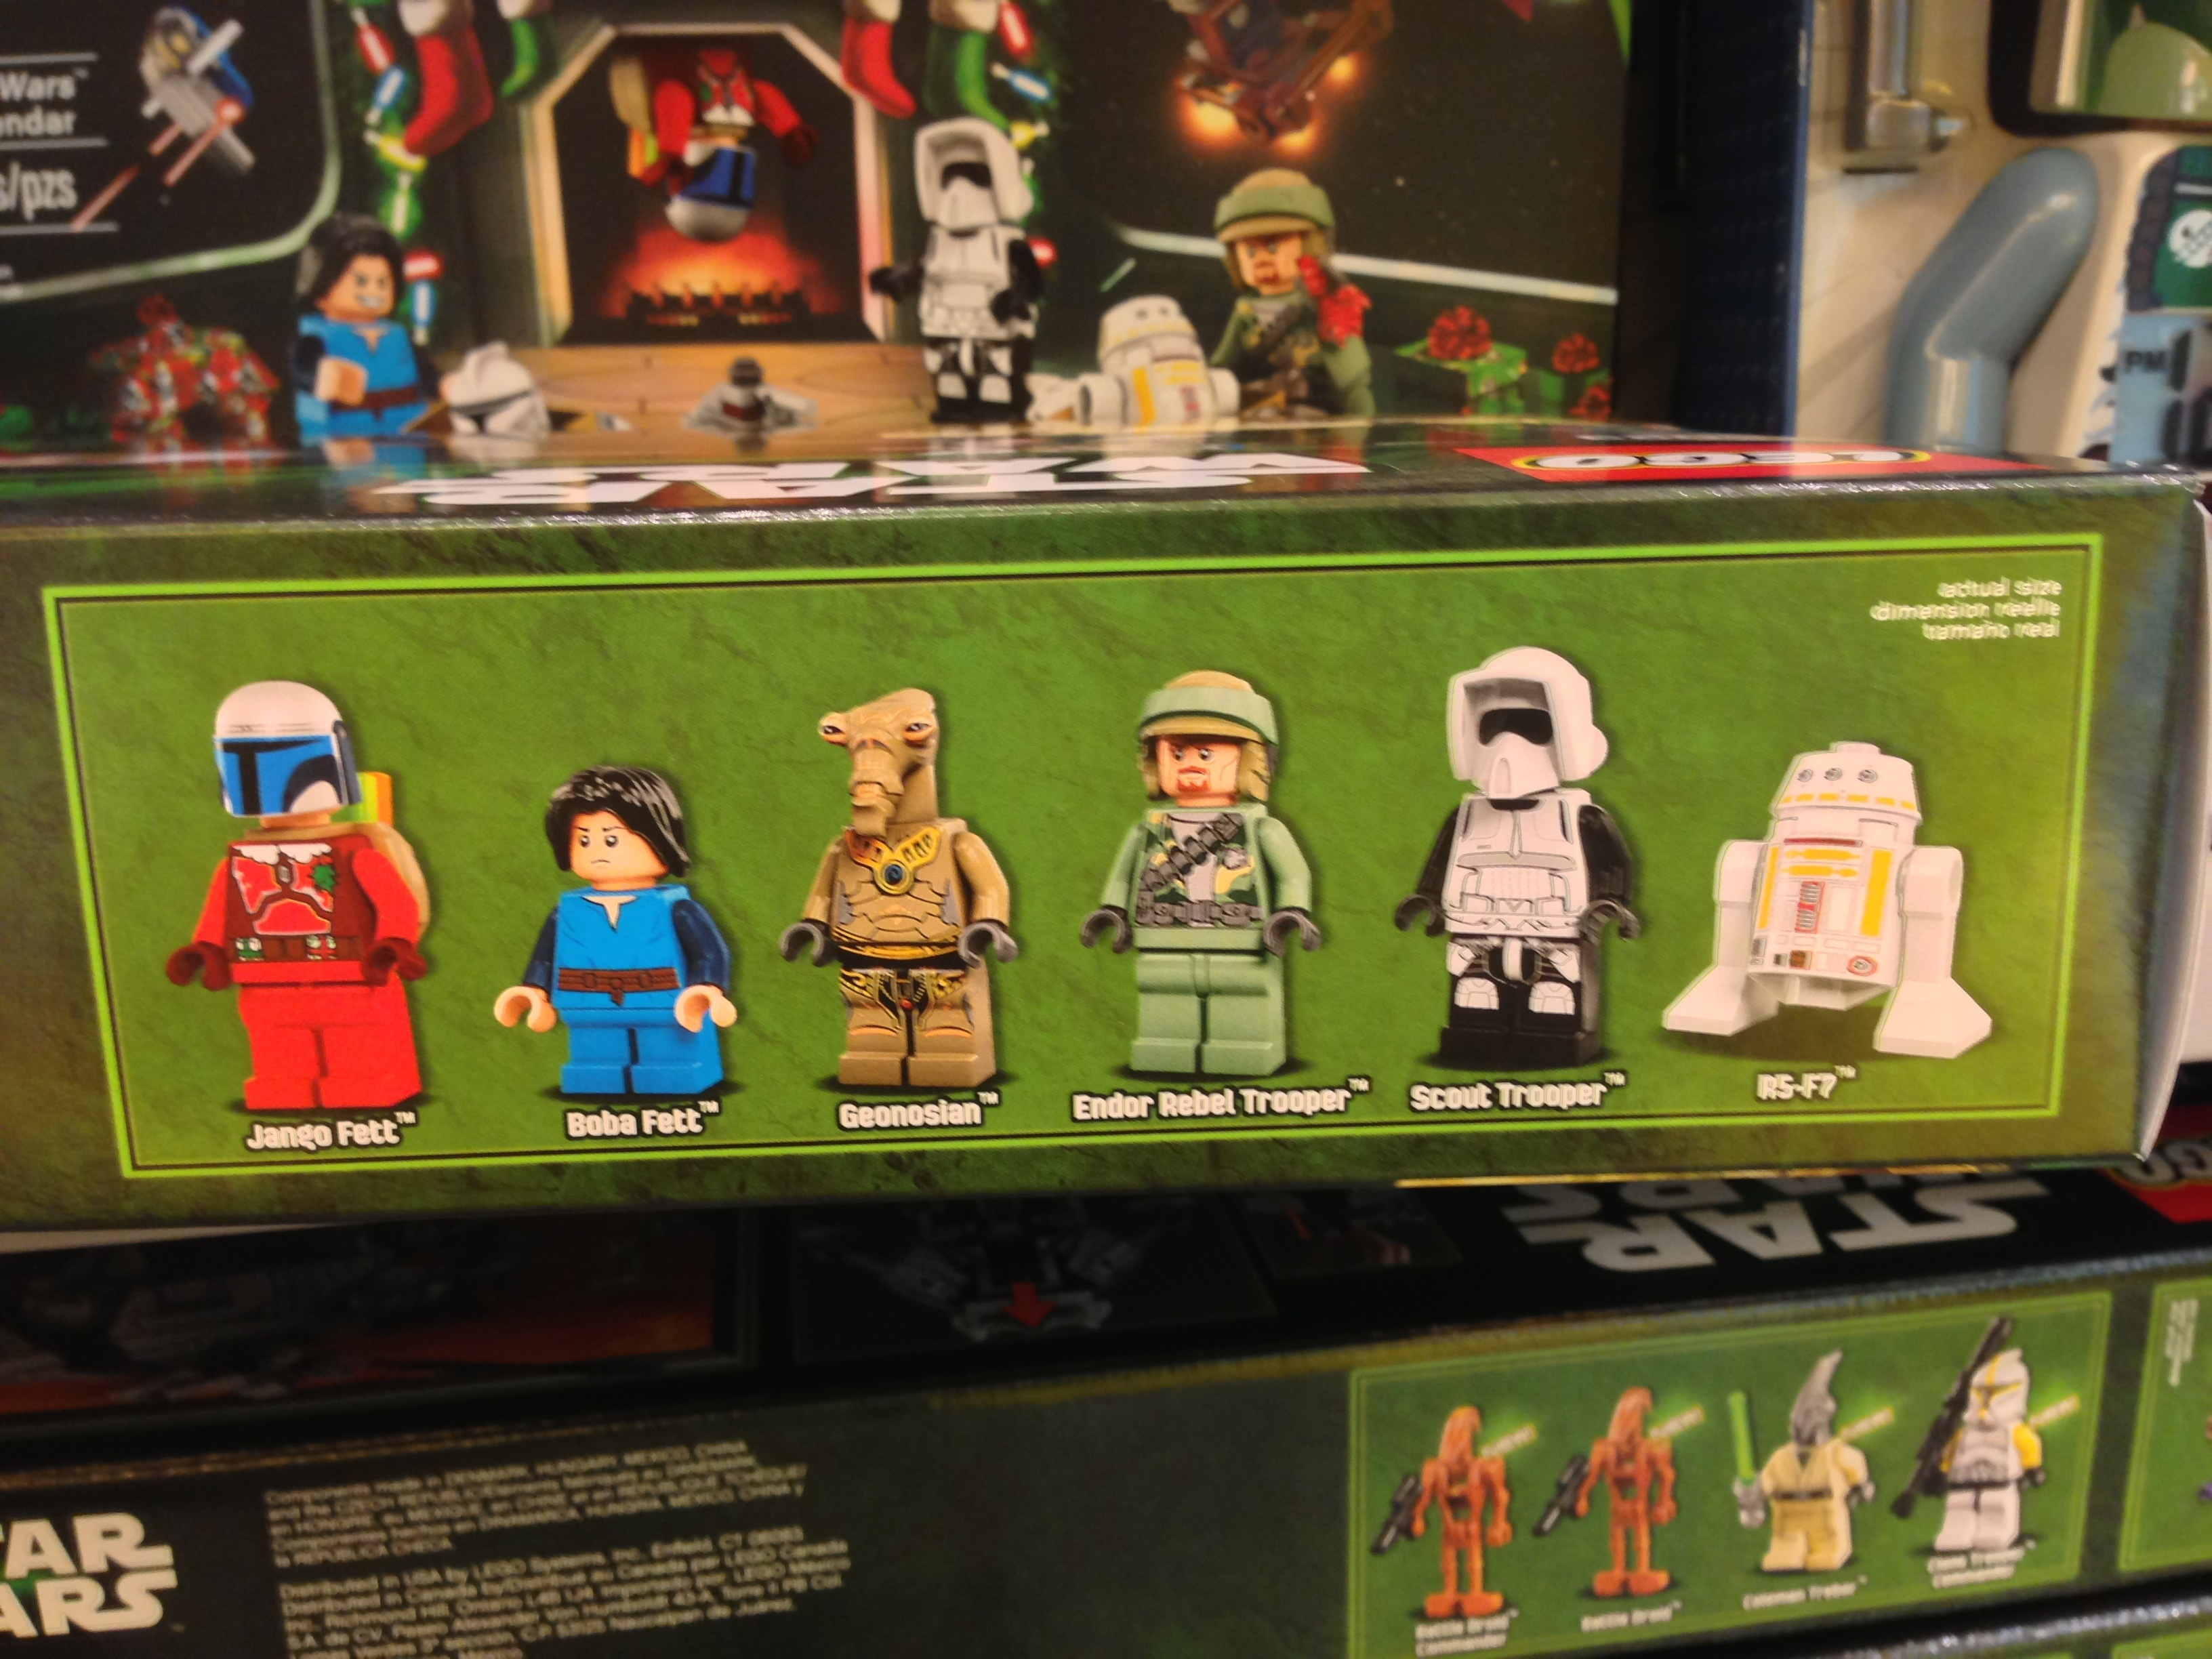 Robonino Lego Star Wars 3 Cheat Code. with Lego Advent Calendar 2013 Cheat Codes